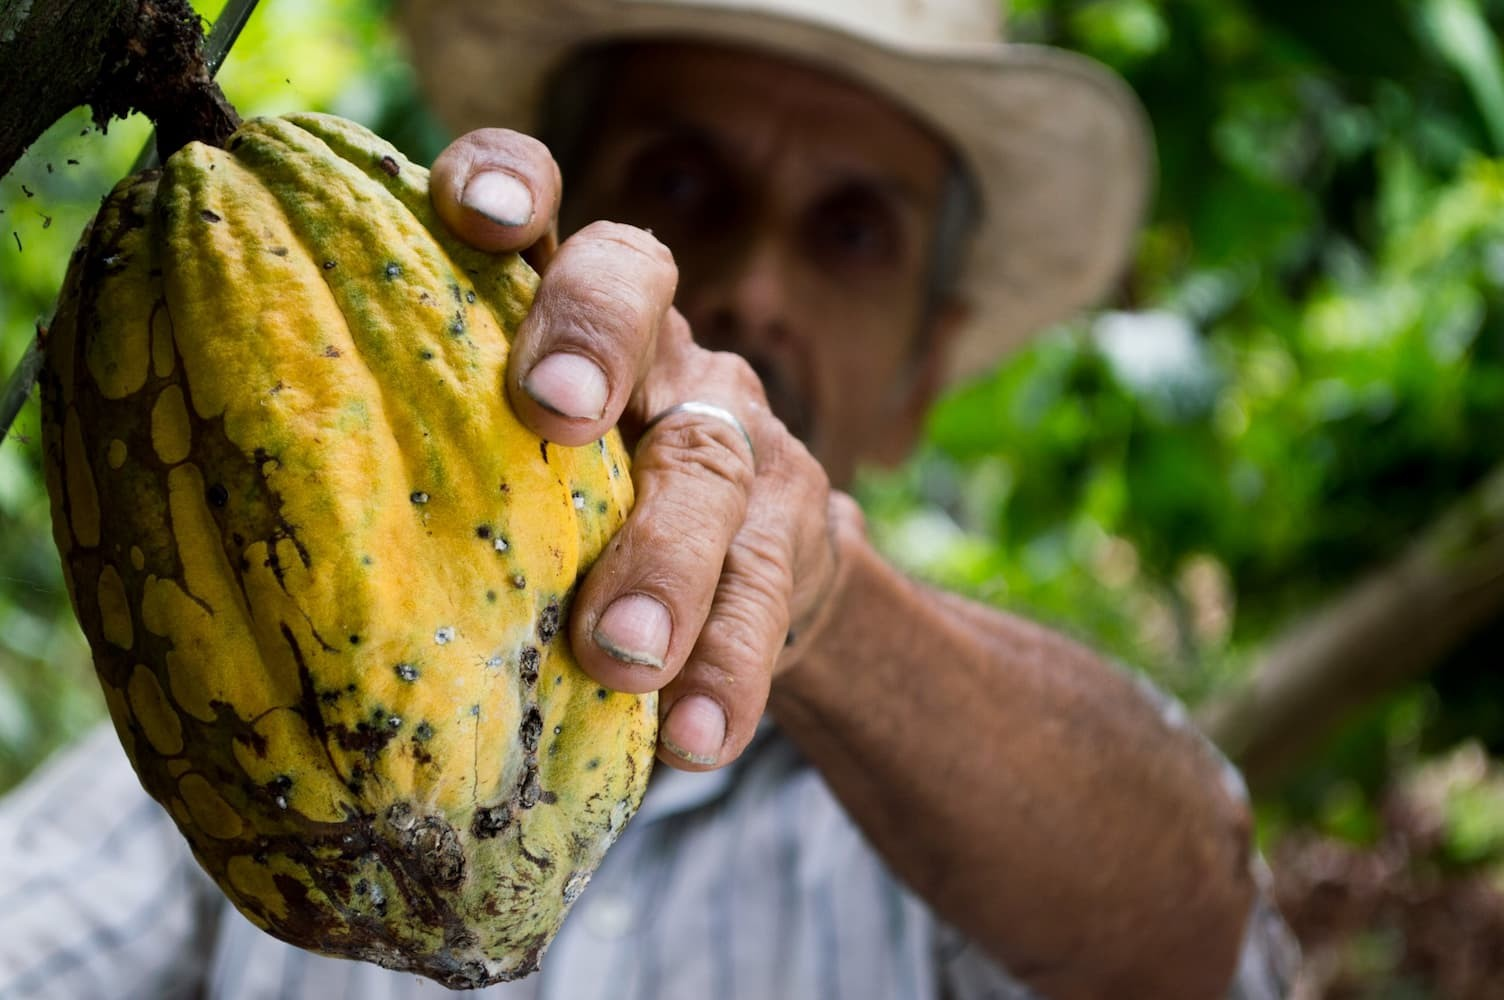 Activating and Relaxing Using Ceremonial Cacao